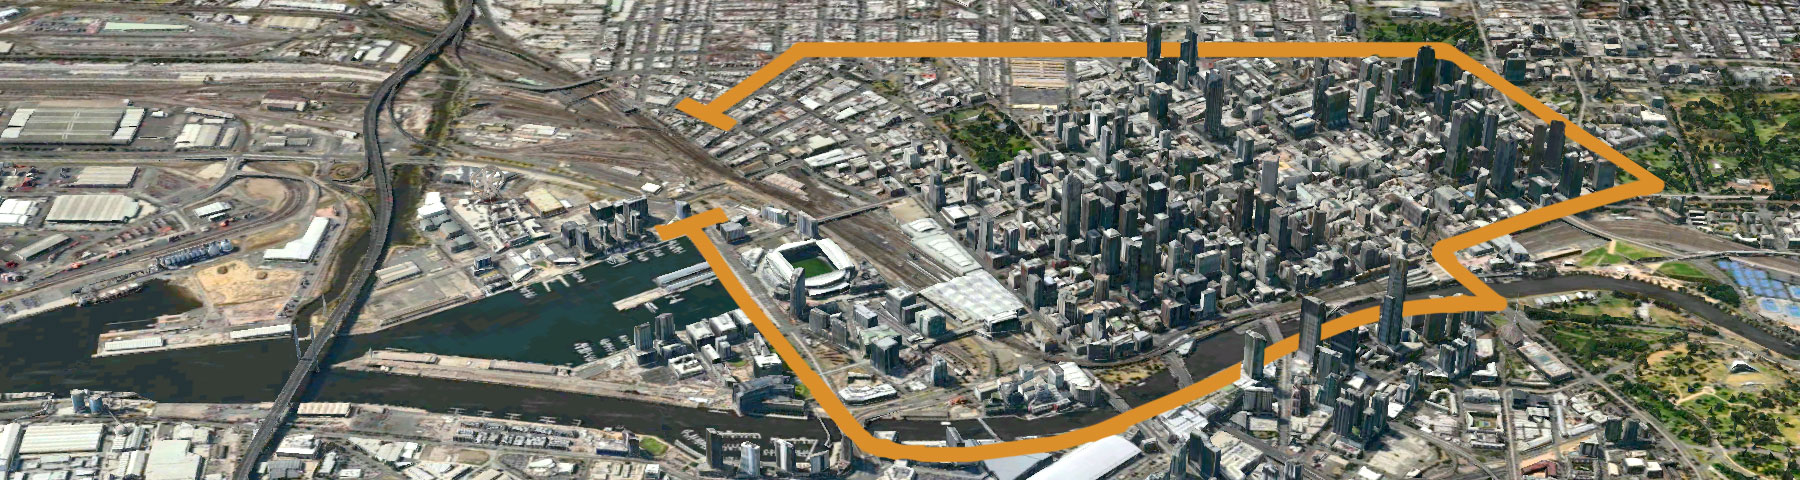 The E-Gate site not only has the potential to be a visual gateway for traffic arriving into the city, it also has the potential to be a gateway between Docklands and the north of Melbourne's CBD, in effect closing the loop on the walkways about the CBD.